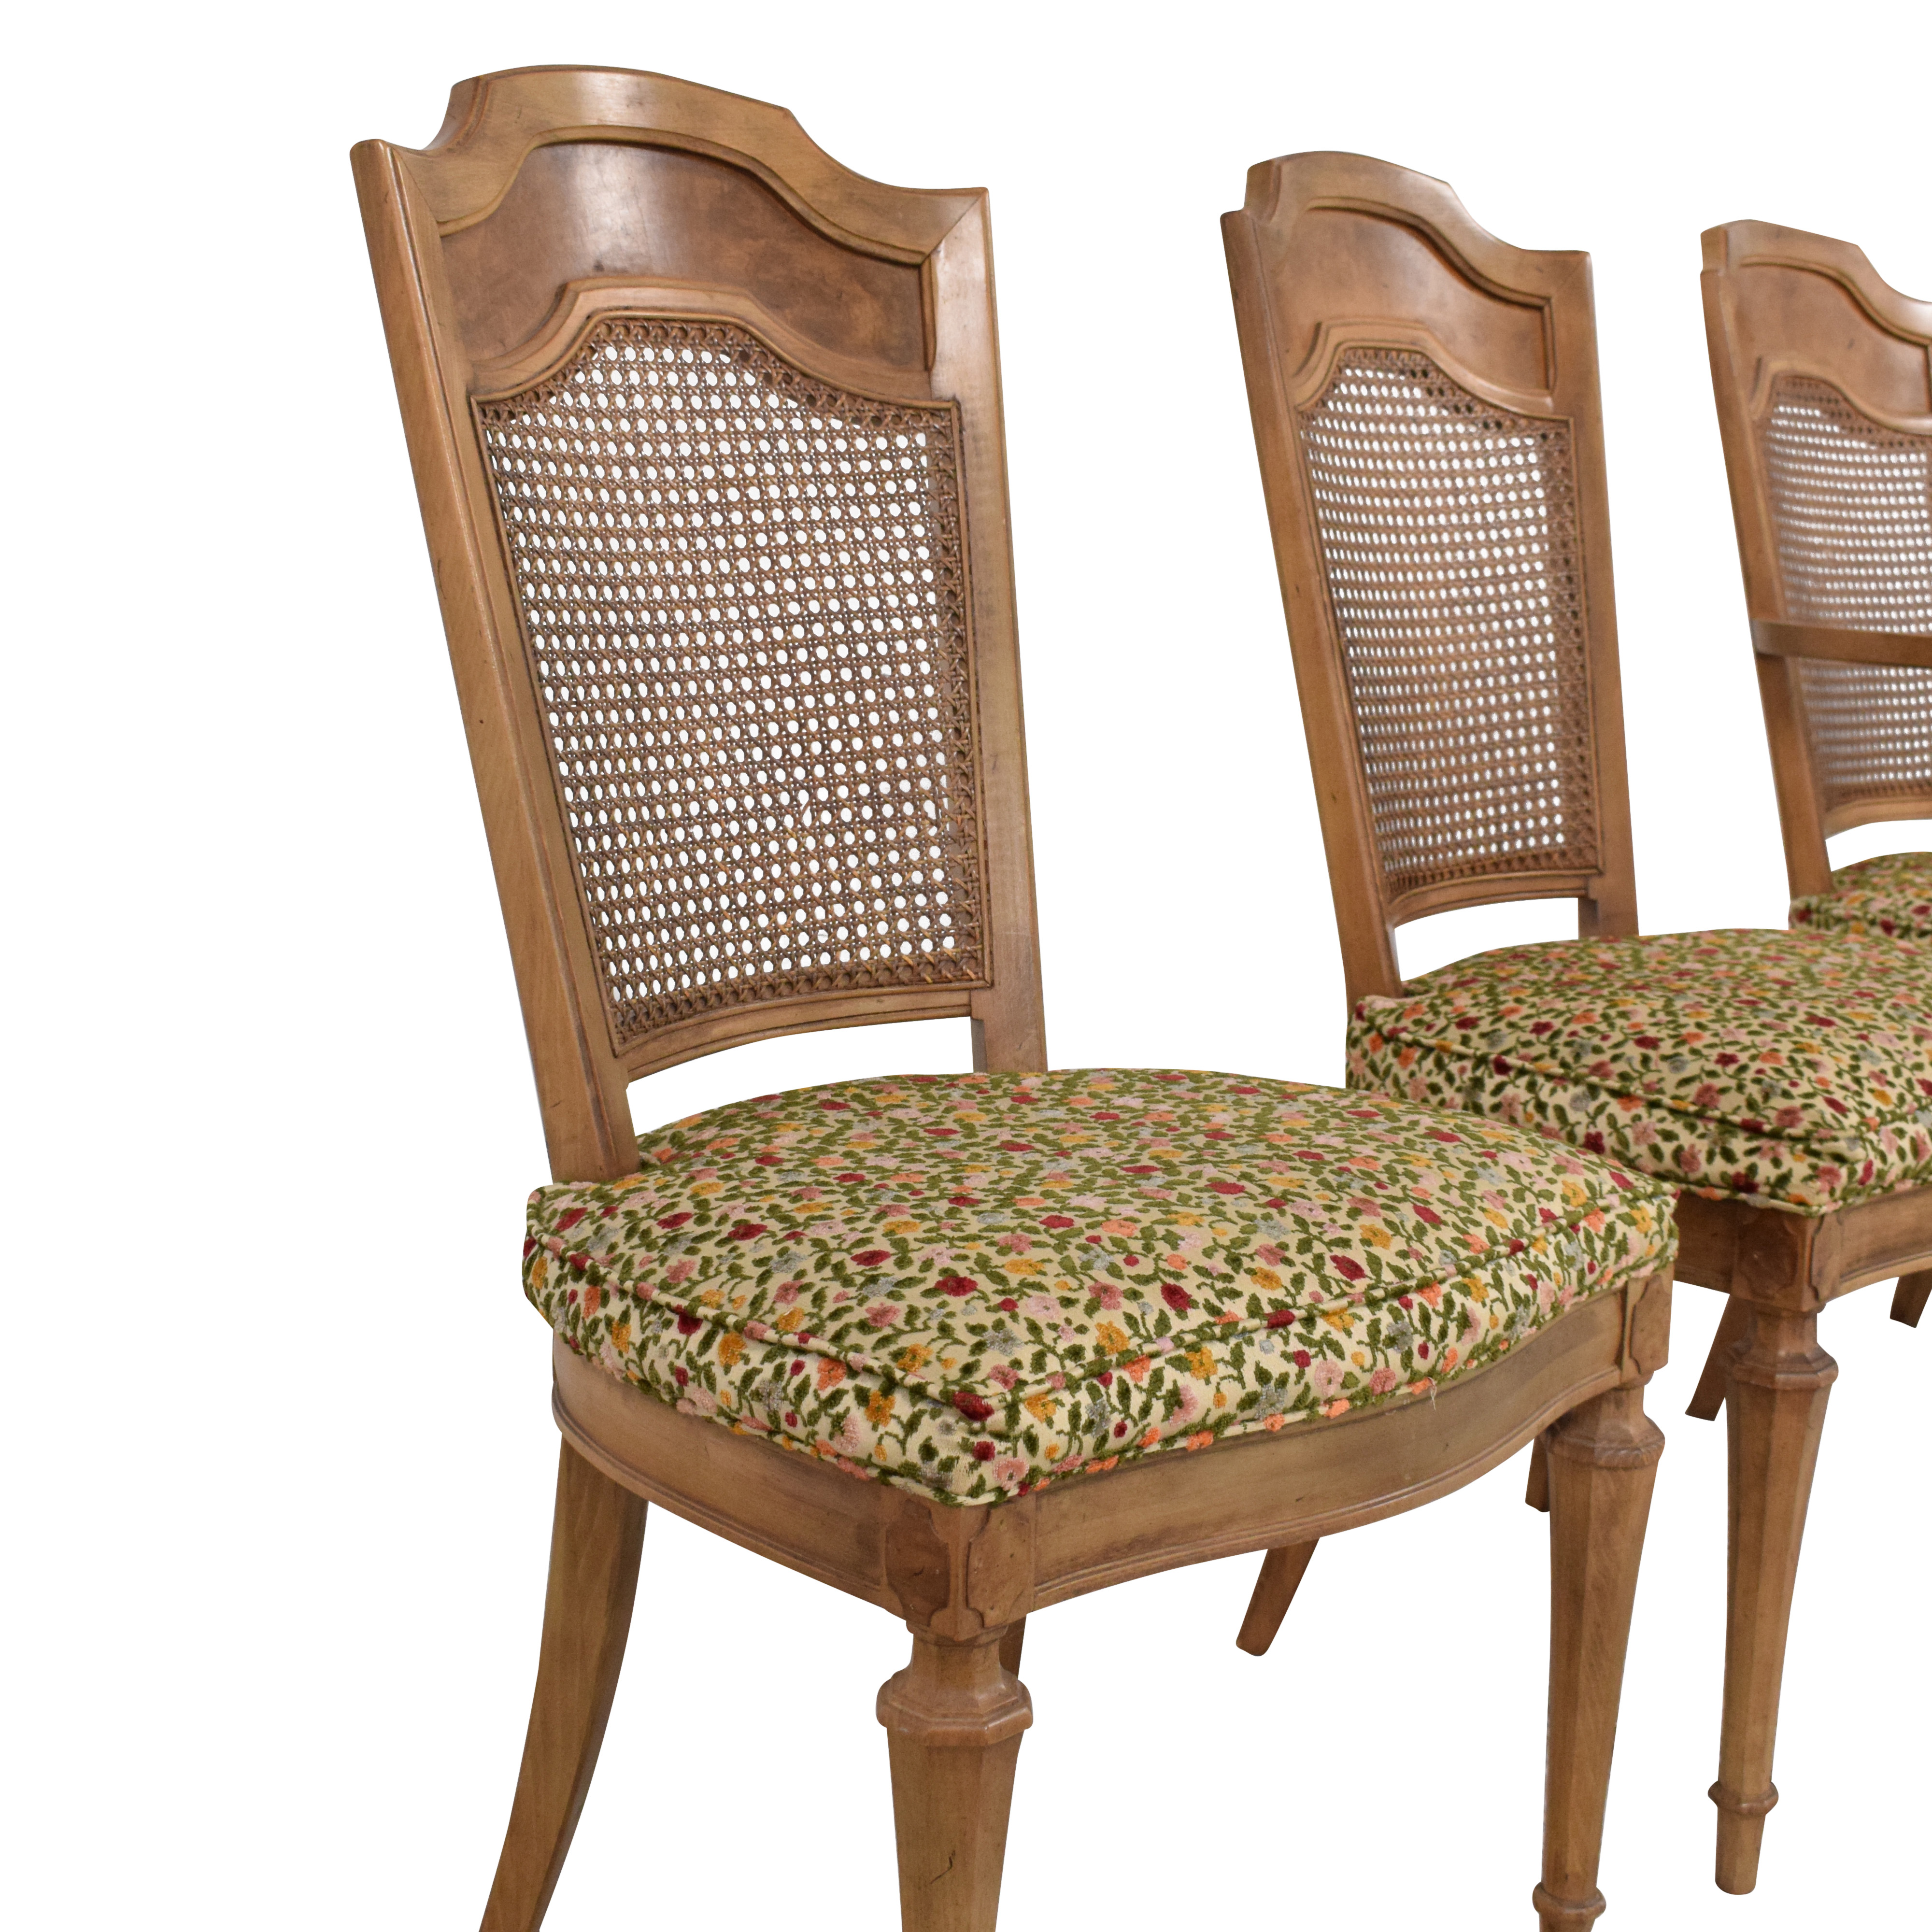 Upholstered Cane Back Dining Chairs / Chairs